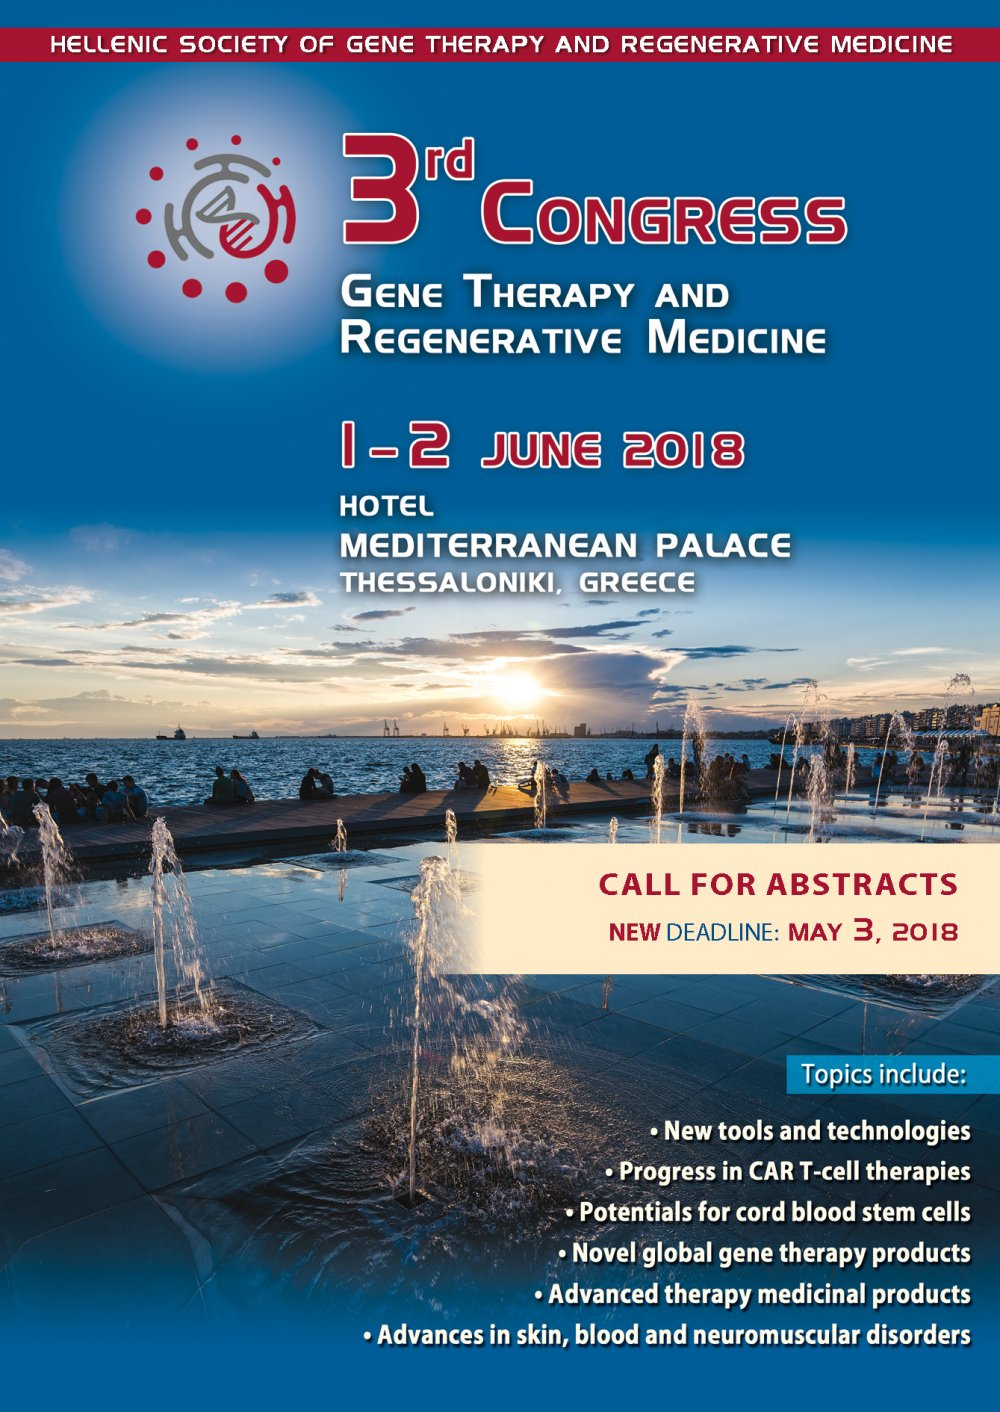 3rd Congress Gene Therapy and Regenerative Medicine - Call for Abstracts